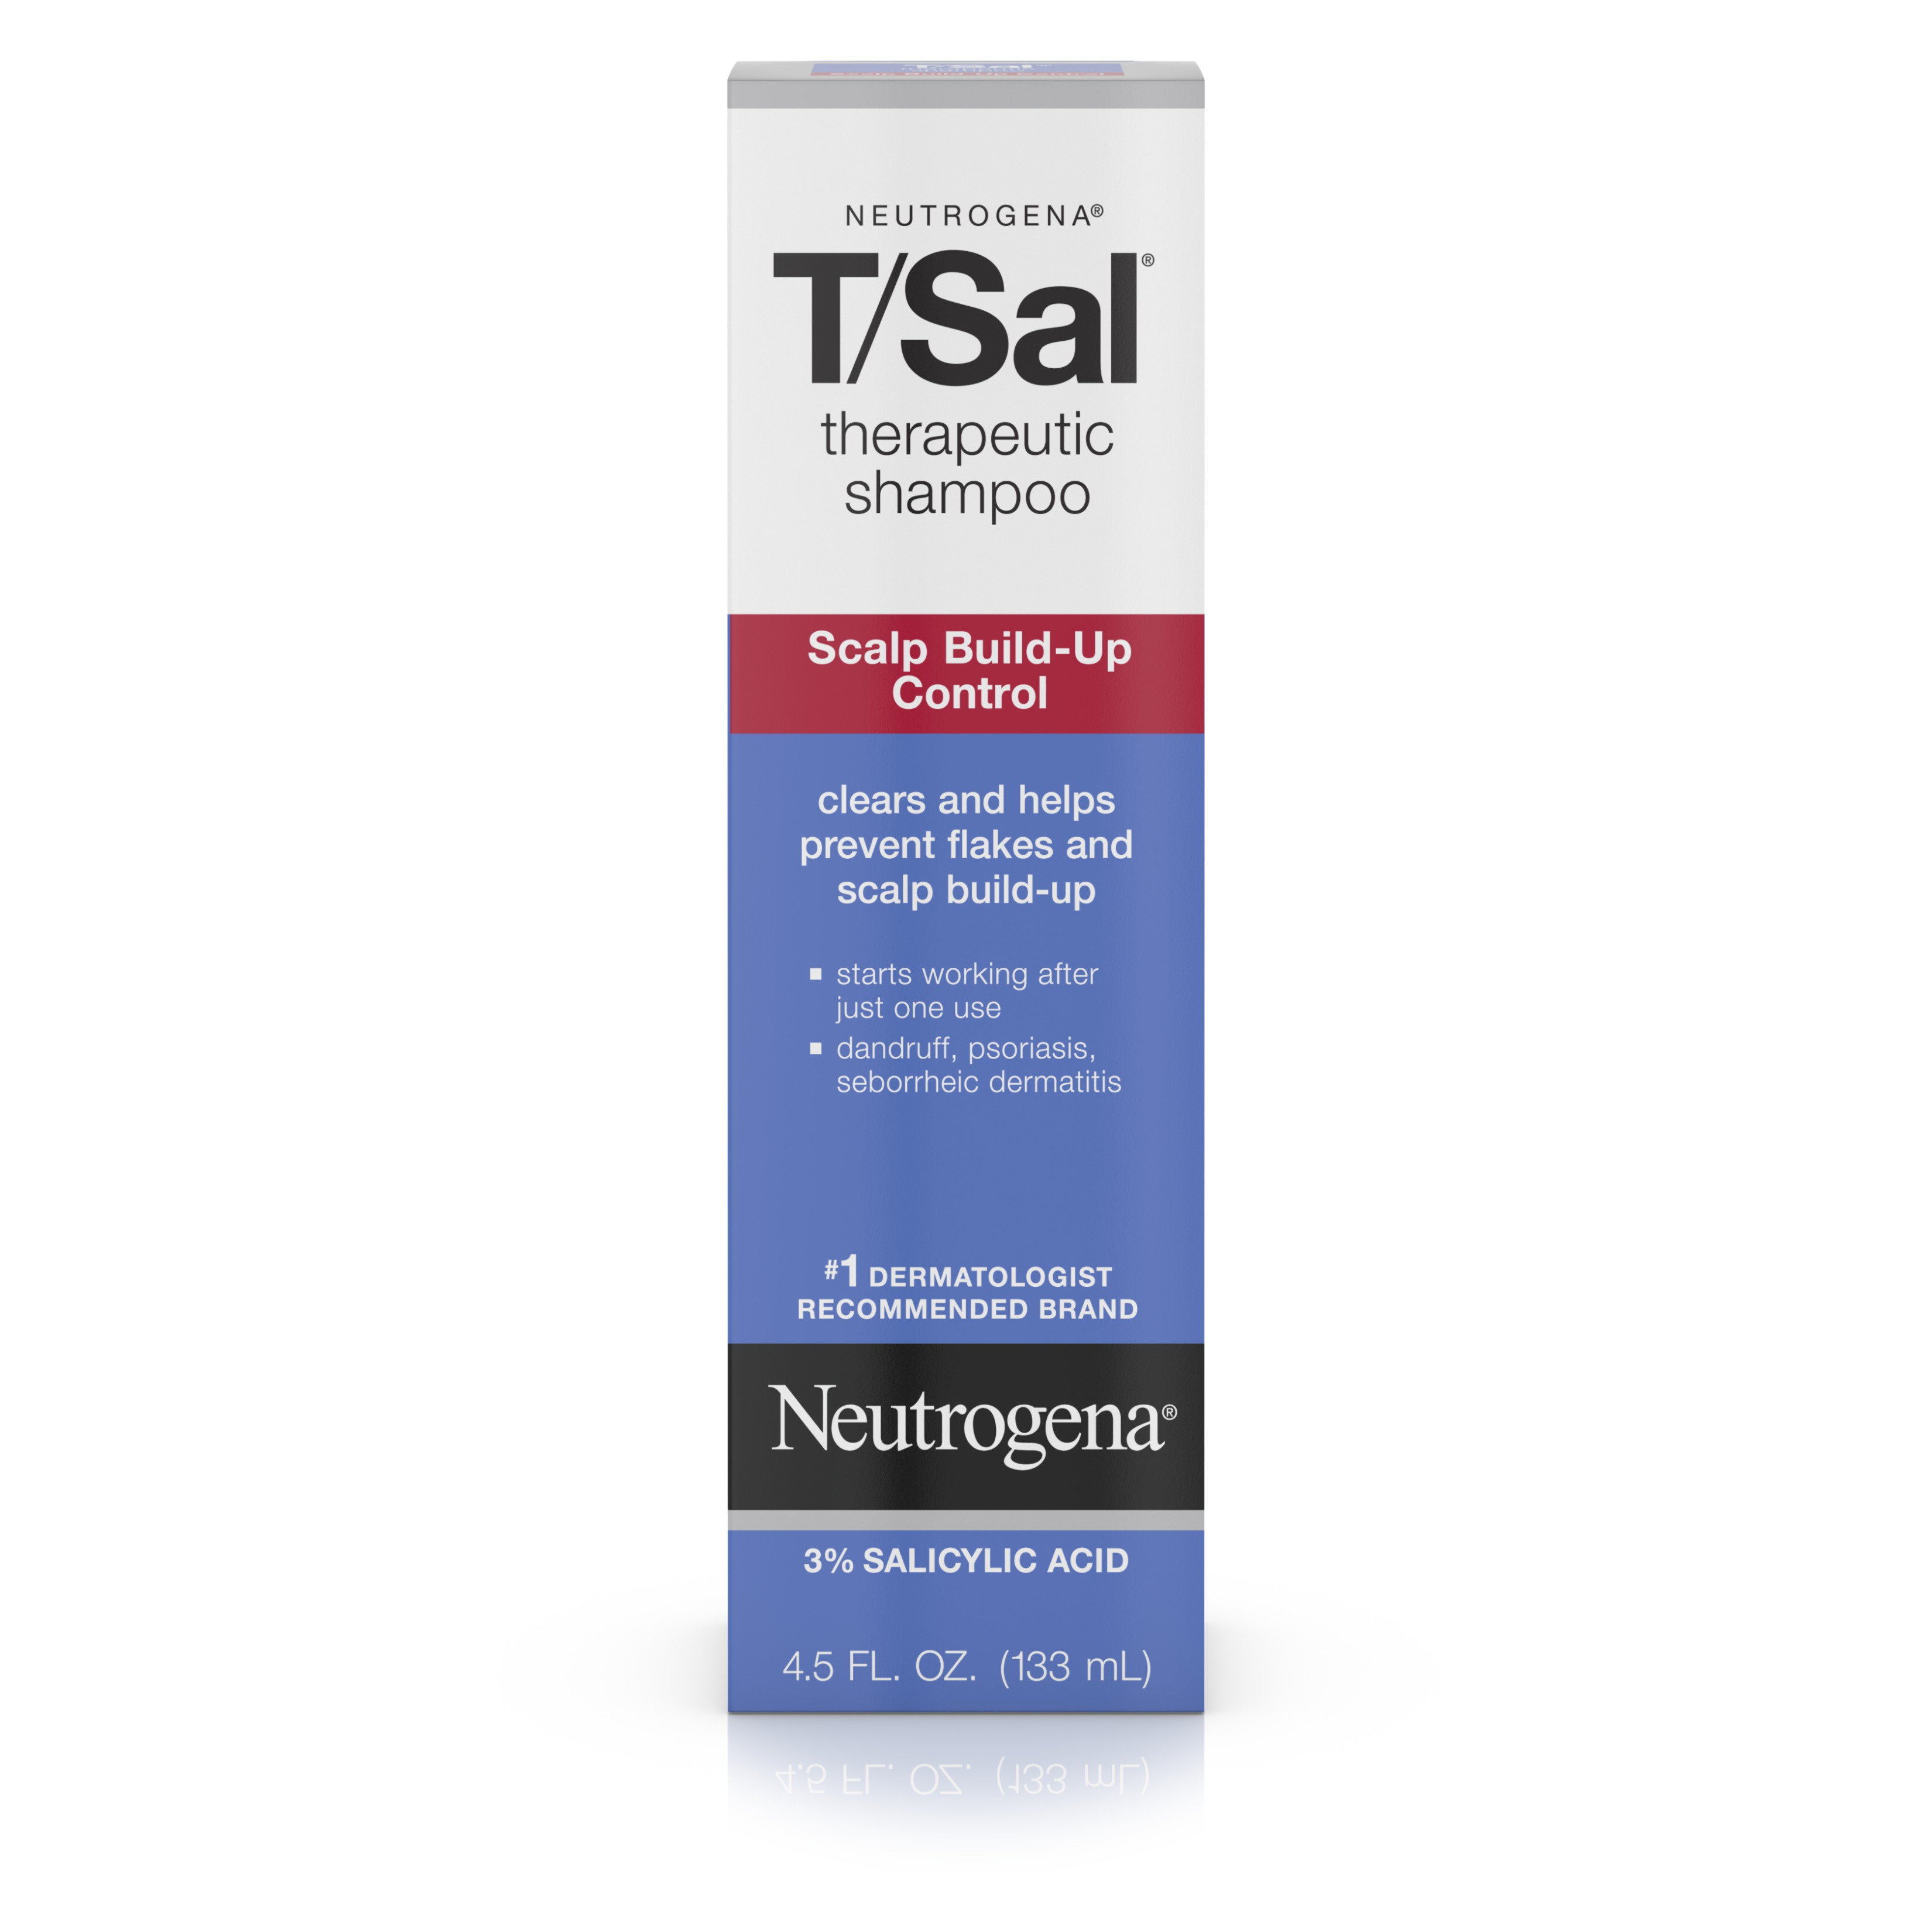 Neutrogena T/Sal Shampoo Scalp Build-Up Control, 4.5 Fl Oz - Walmart.com